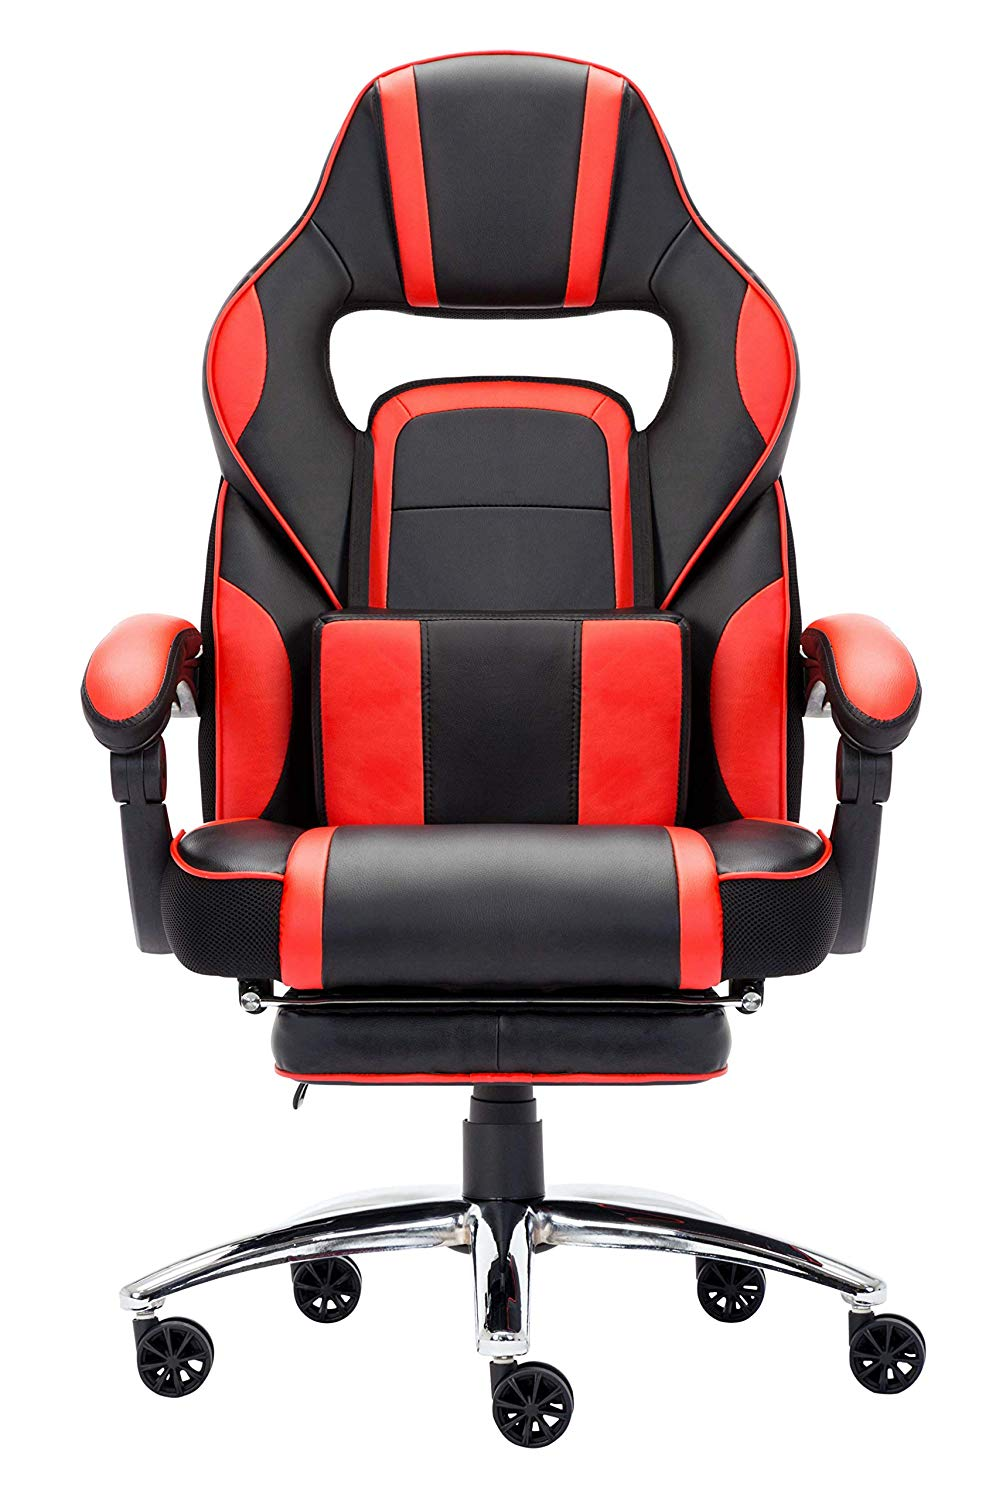 High-back Faux Leather Office Gaming Computer Chair Thick Padded Extendable Racing Gaming Executive Chair With Footrest